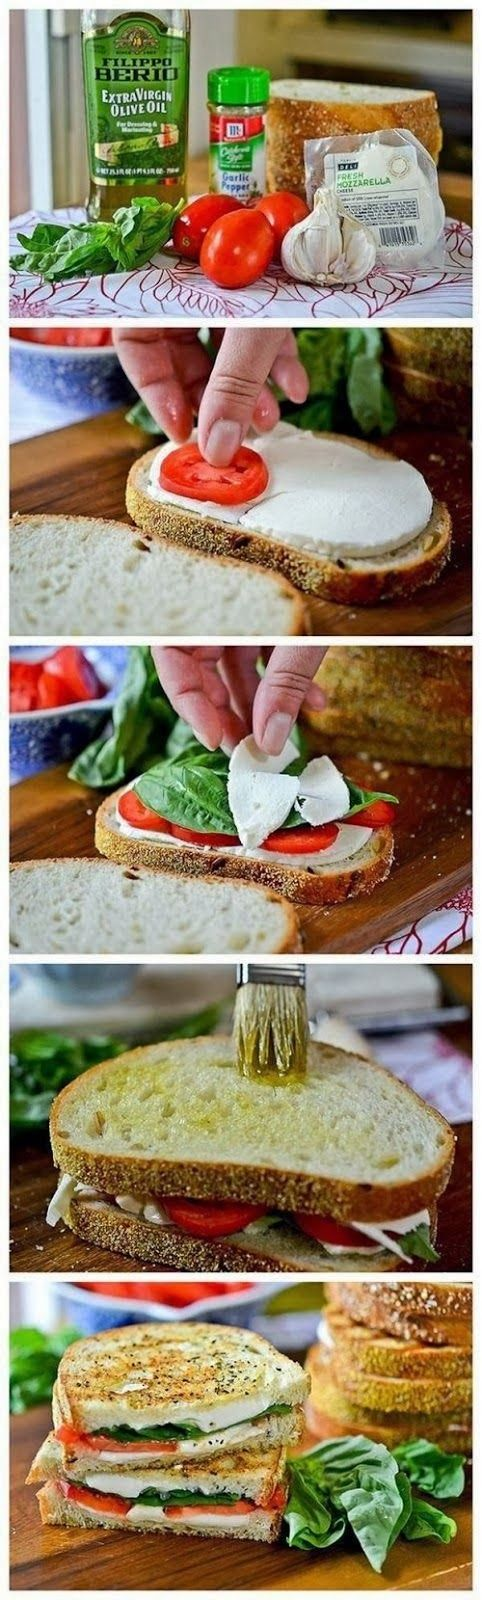 Grilled Margherita Sandwiches - Try with spinach!